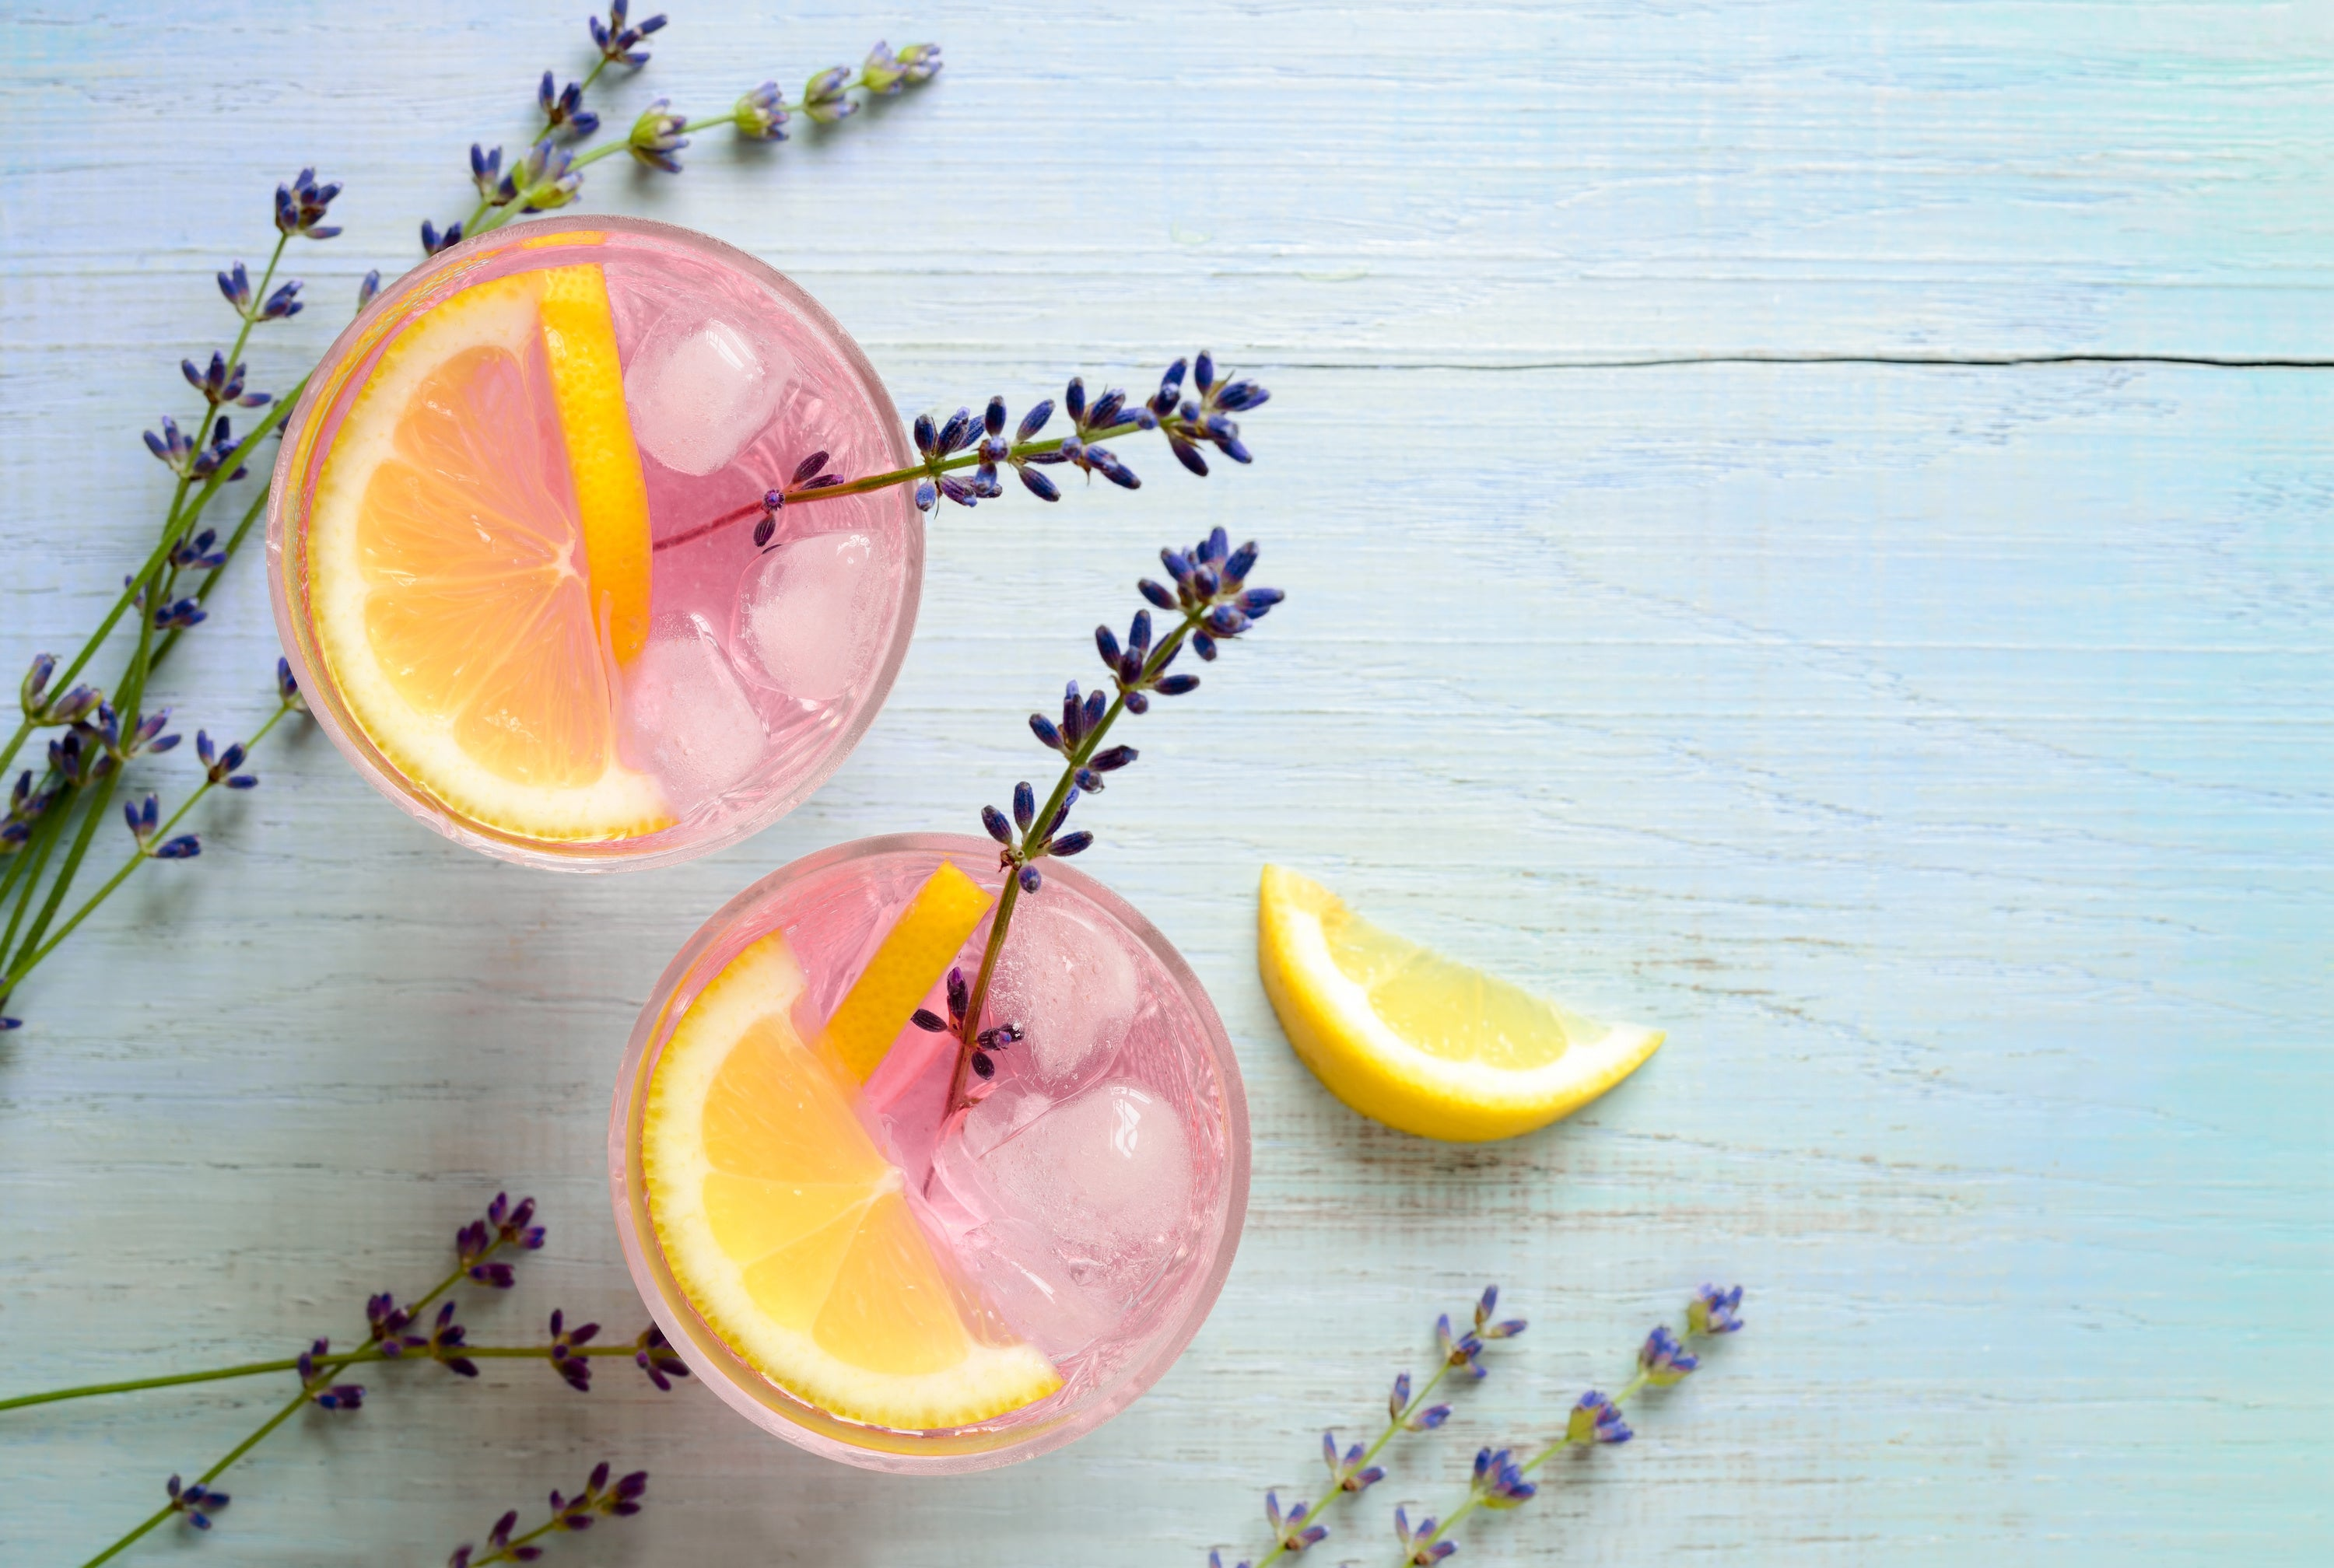 CBD Lavender Lemonade Recipe